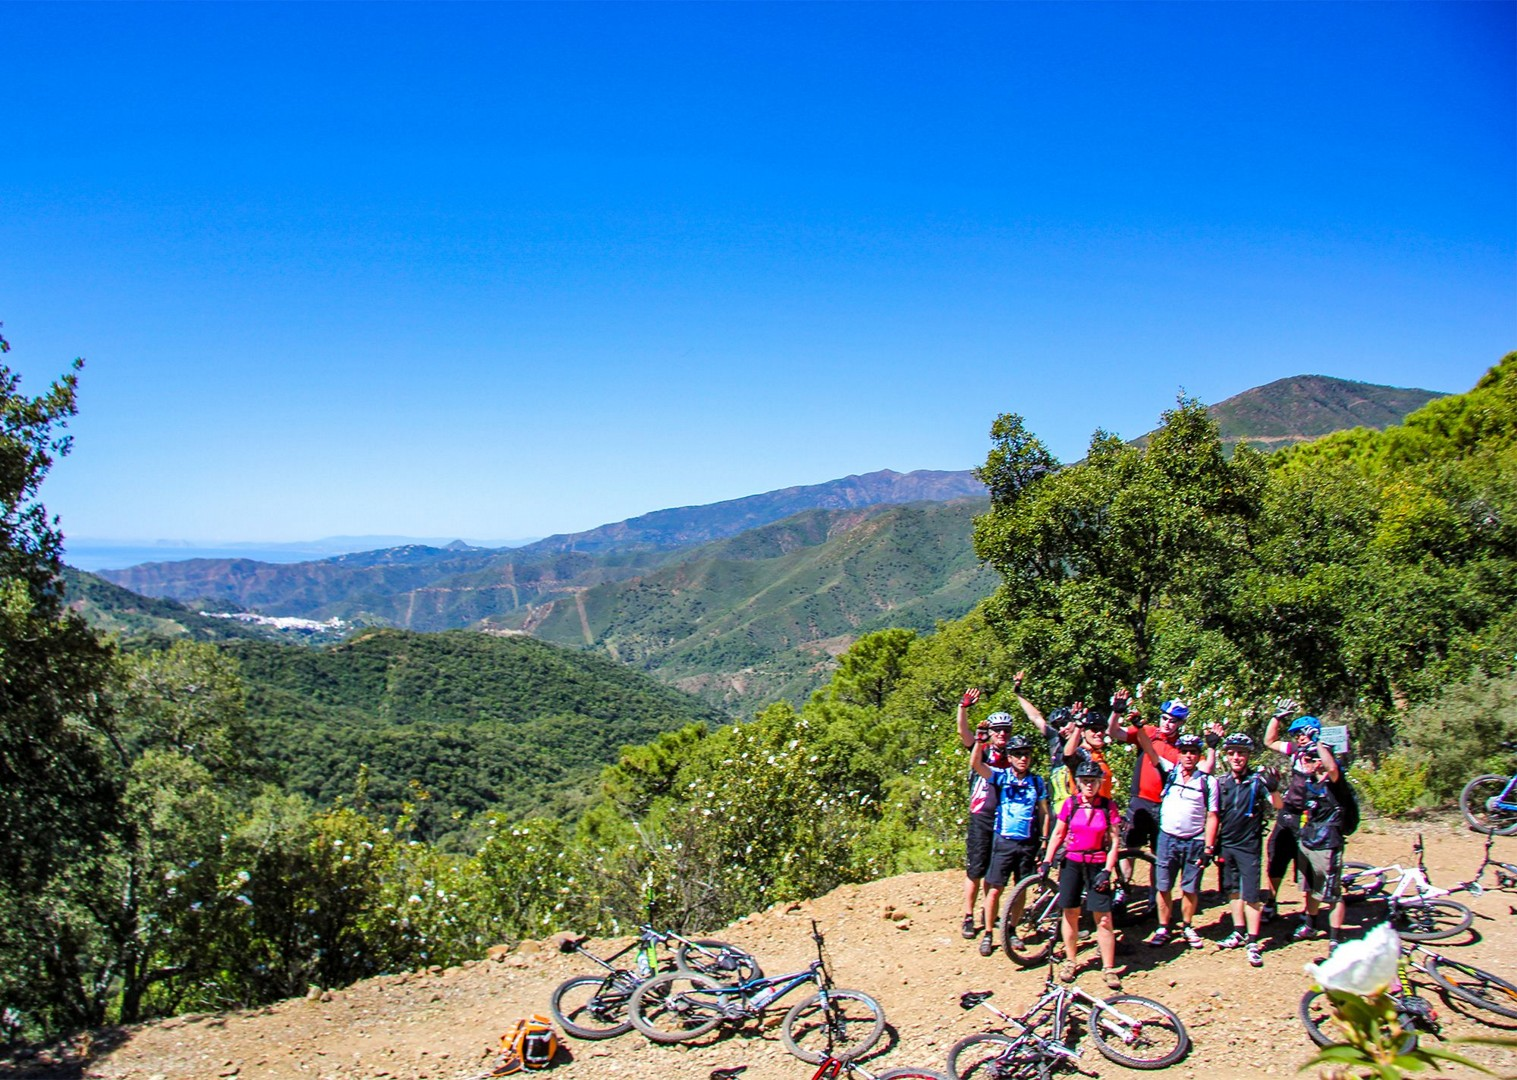 group-cycling-guided-mountain-bike-holiday-biking-in-spain.jpg - Spain - Trans Andaluz - Guided Mountain Bike Holiday - Mountain Biking